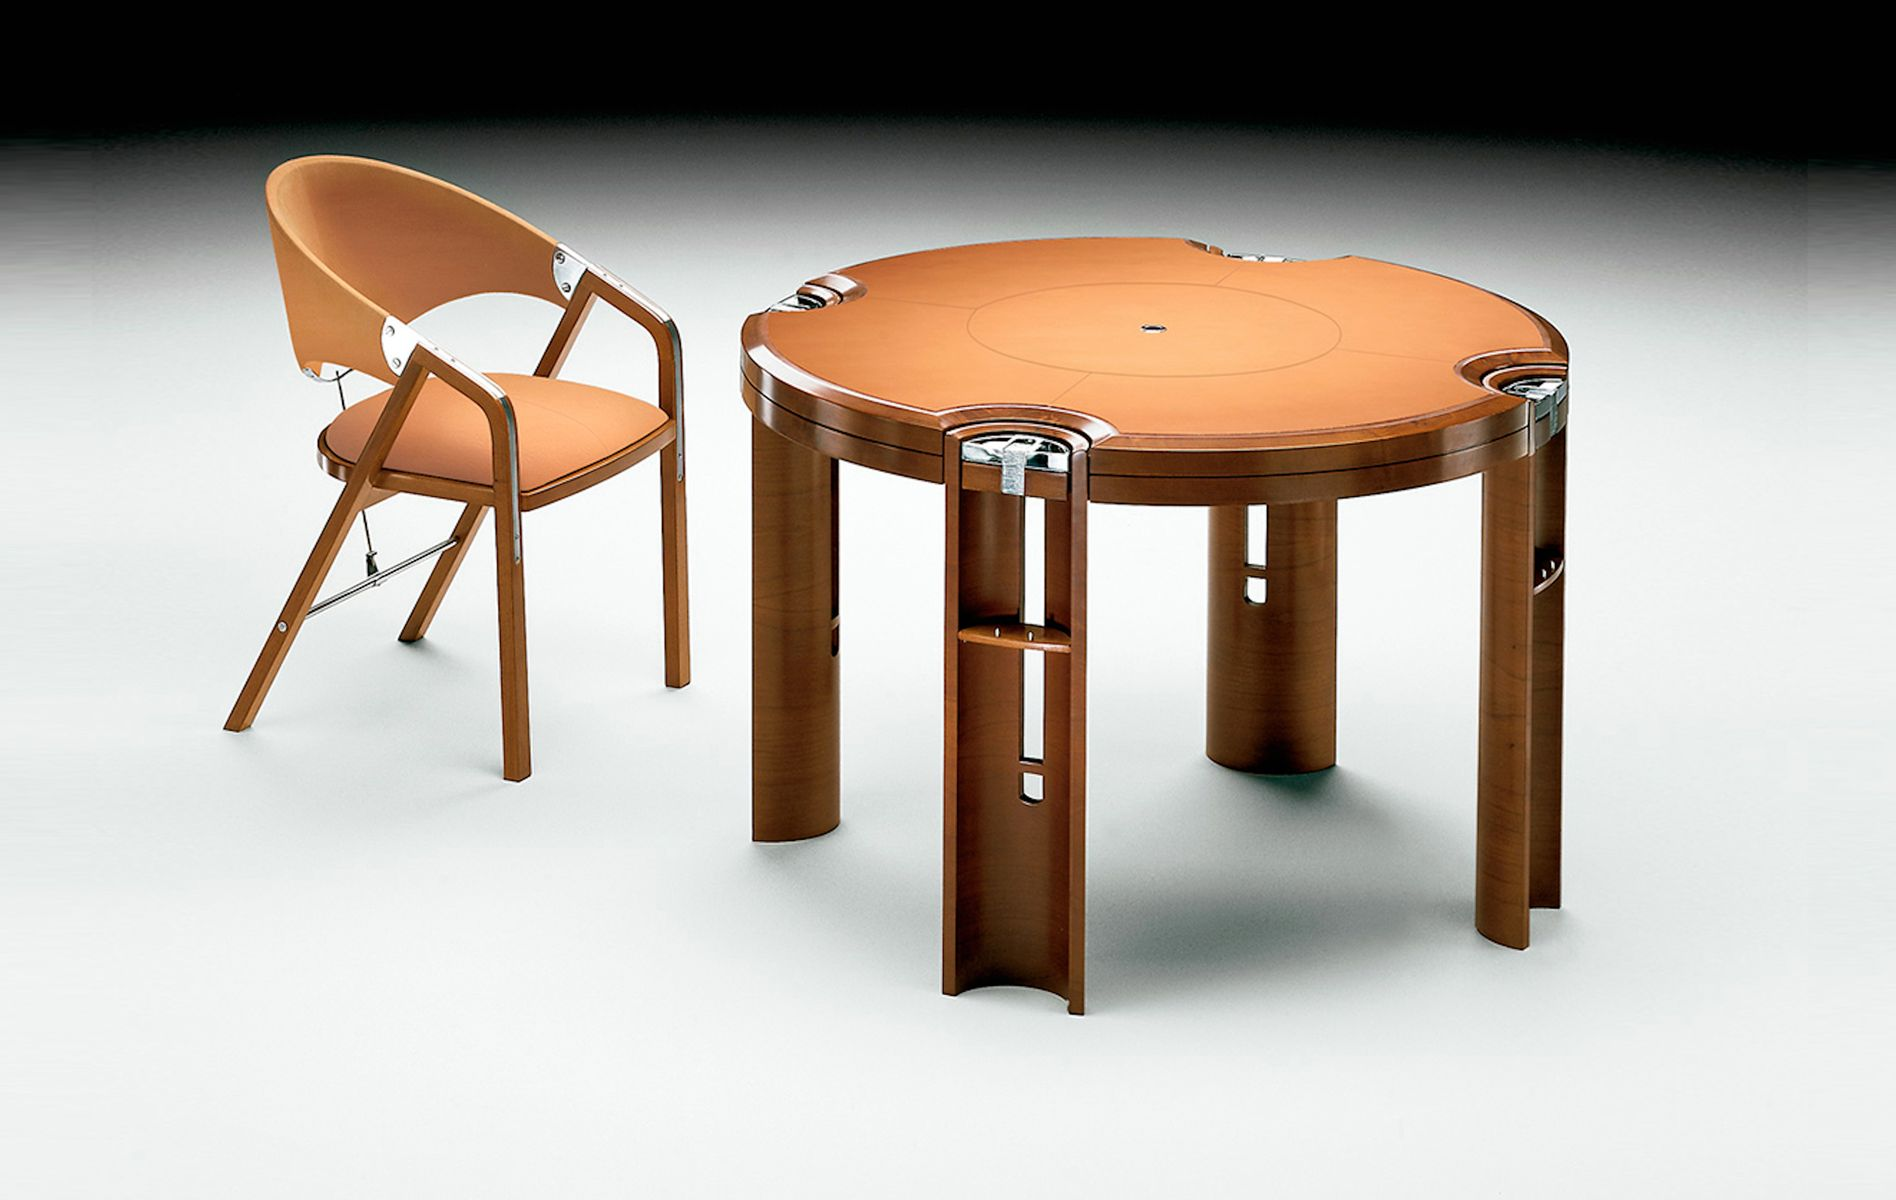 Game Table in Light Walnut by J Tresserra 1987 for sale at Pamono